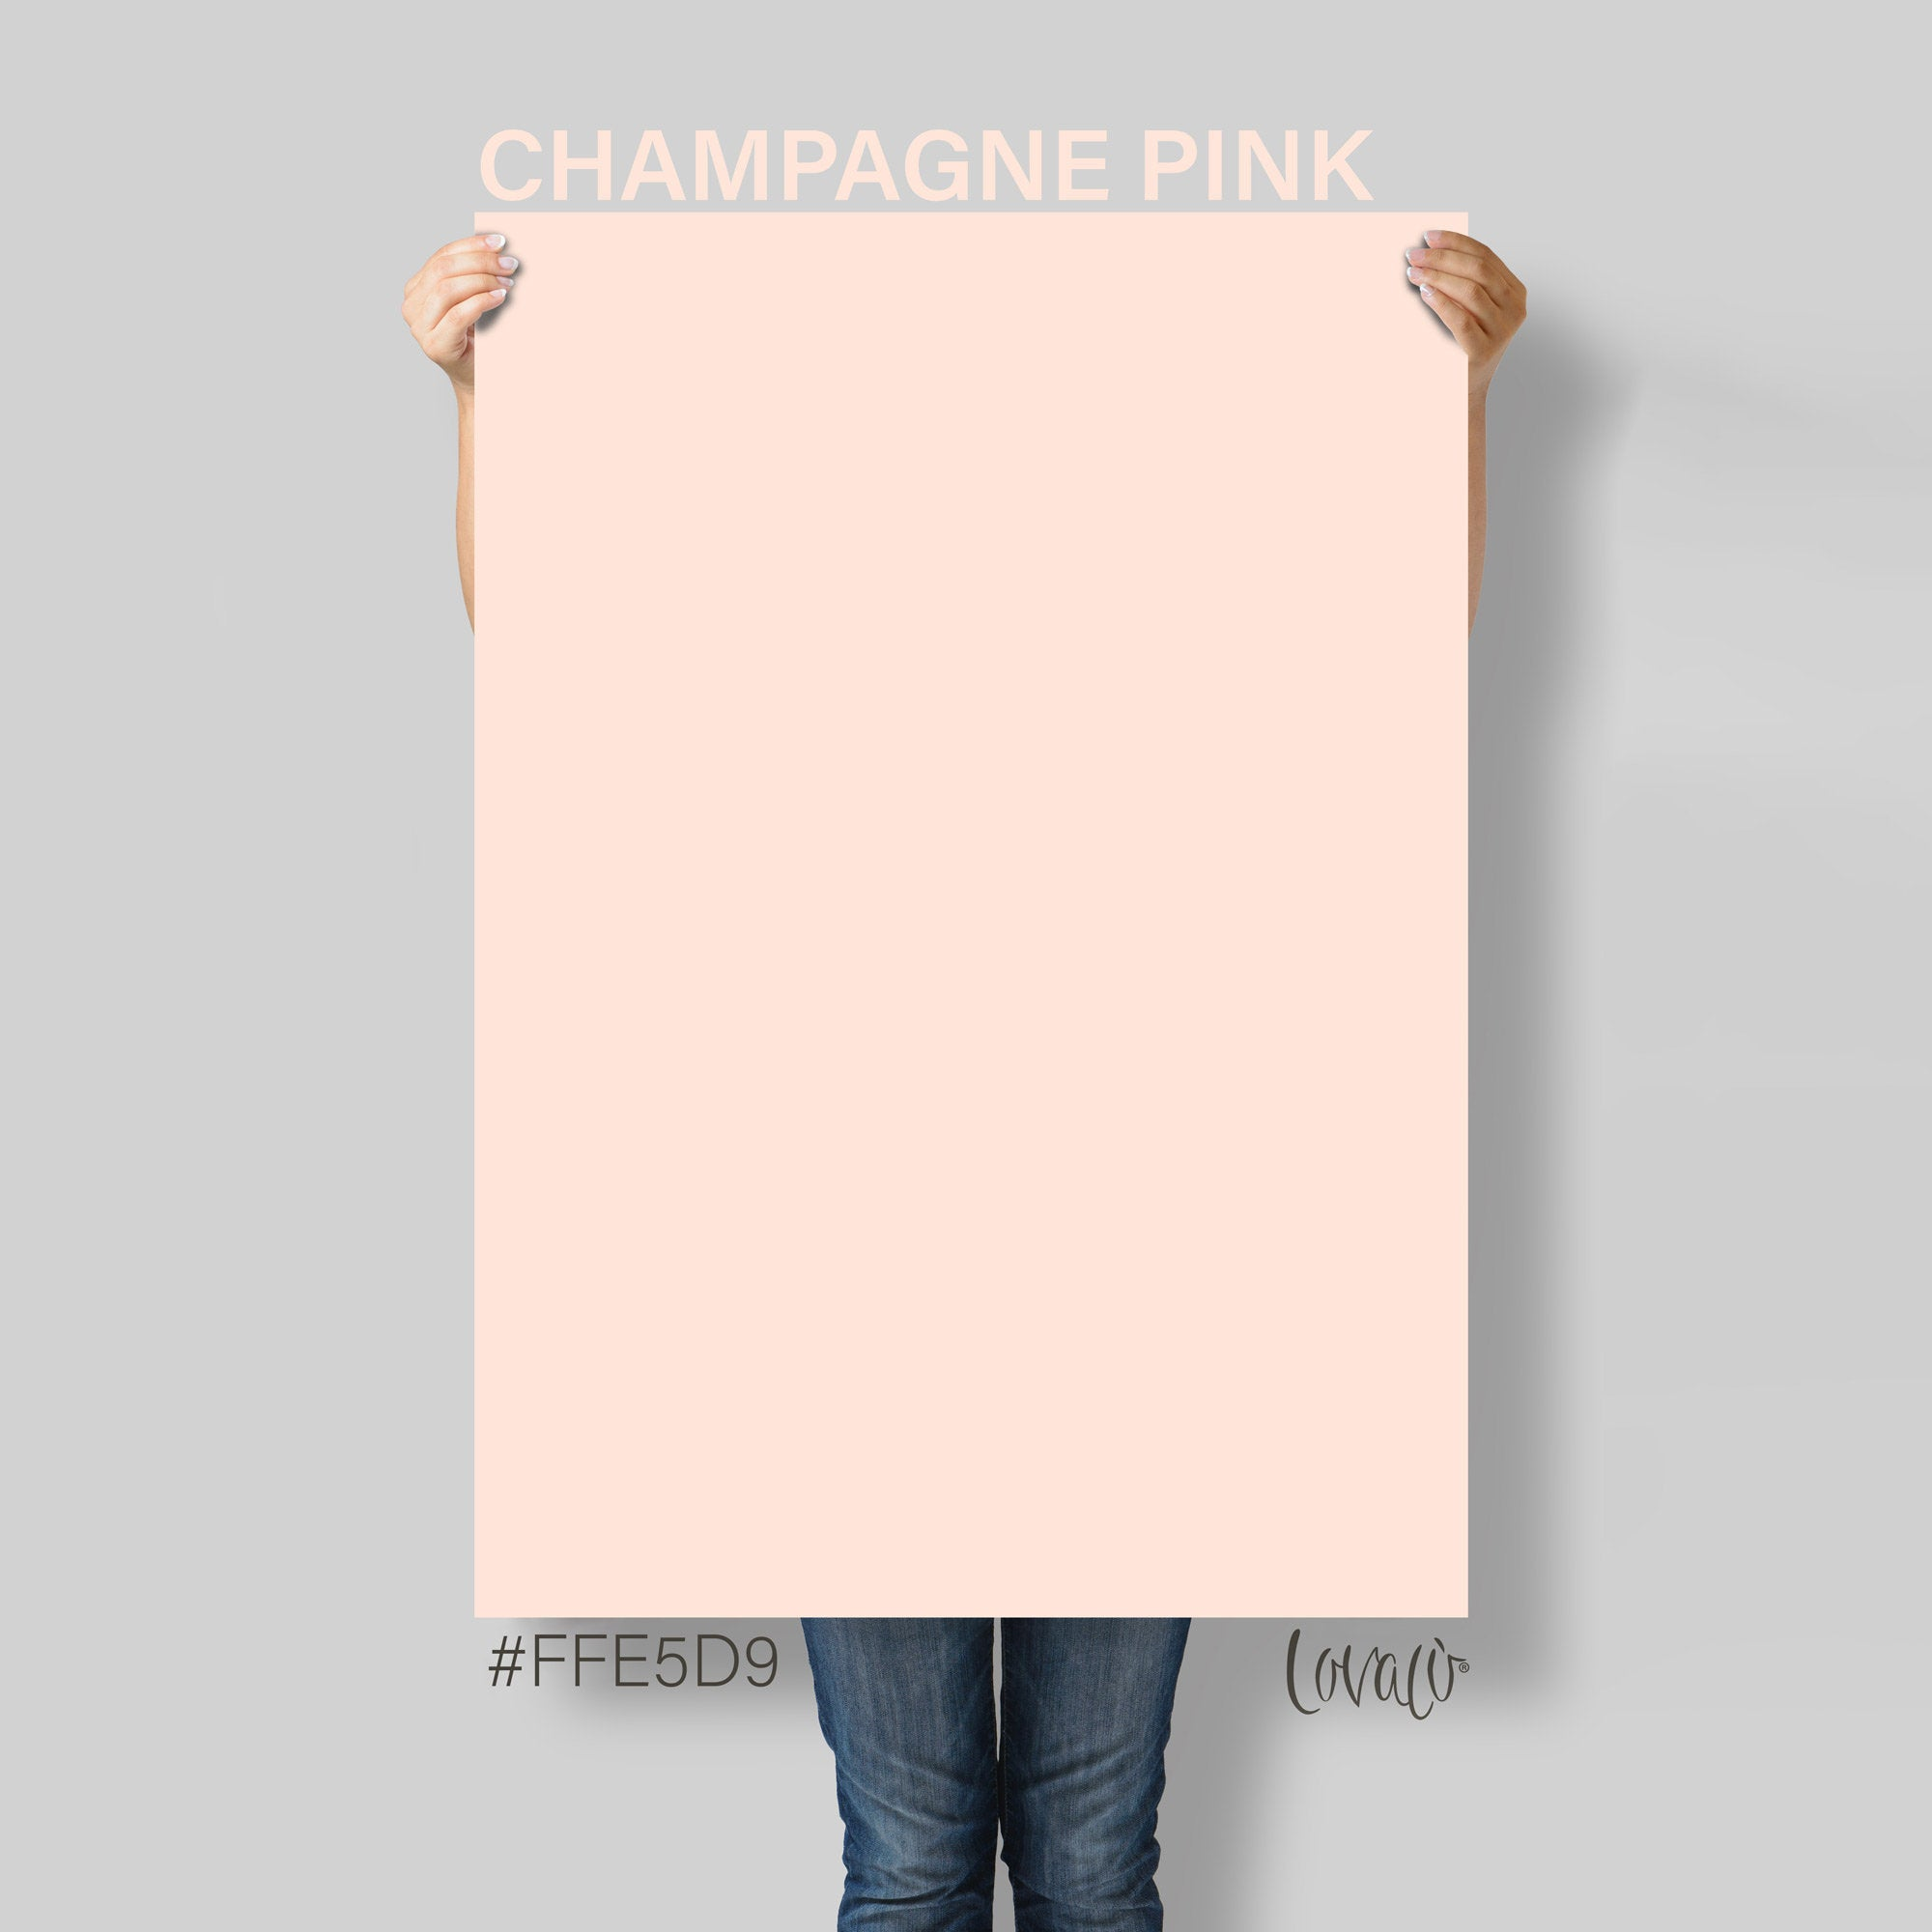 Pastel Pink Champagne solid color Photography Backdrop for Product, Instagram, Flat lay, Social, New born & Food Photography - Lov4003